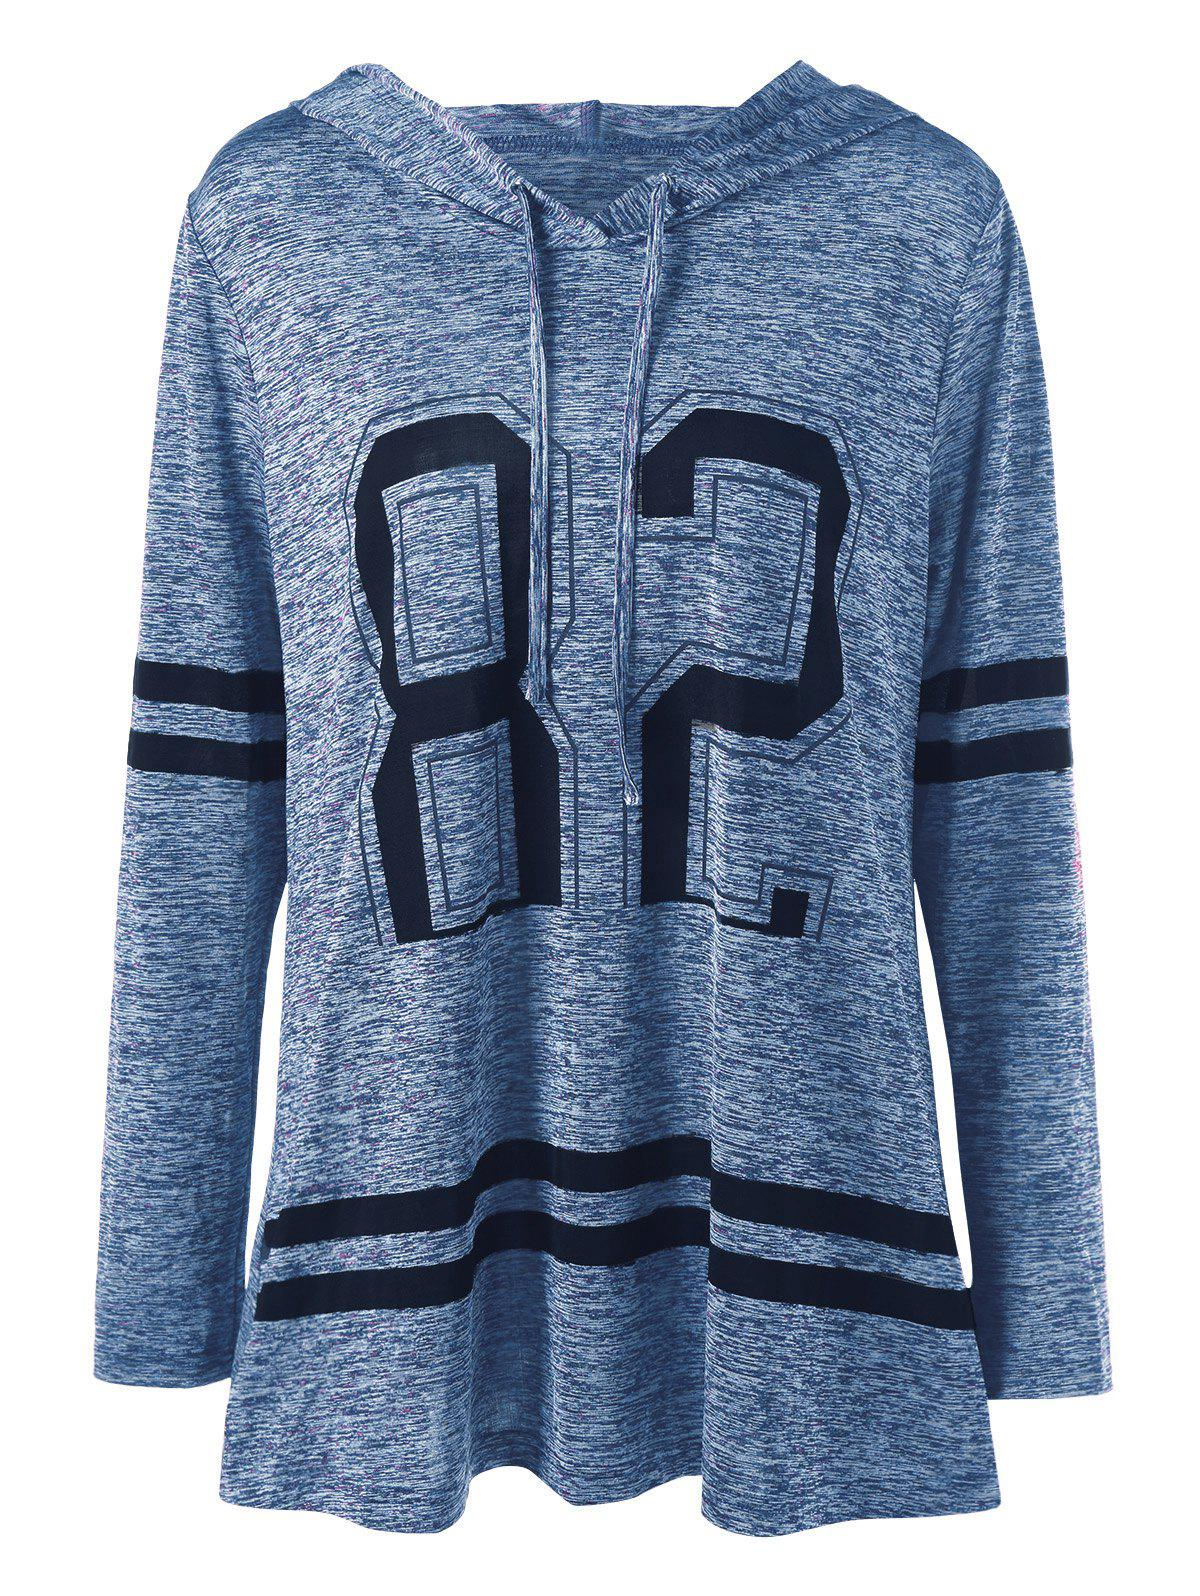 Plus Size Graphic Marled Tunic HoodieWOMEN<br><br>Size: 3XL; Color: AZURE BLUE; Material: Polyester,Spandex; Shirt Length: Long; Sleeve Length: Full; Style: Casual; Pattern Style: Others; Season: Fall,Spring; Weight: 0.3100kg; Package Contents: 1 x Hoodie;